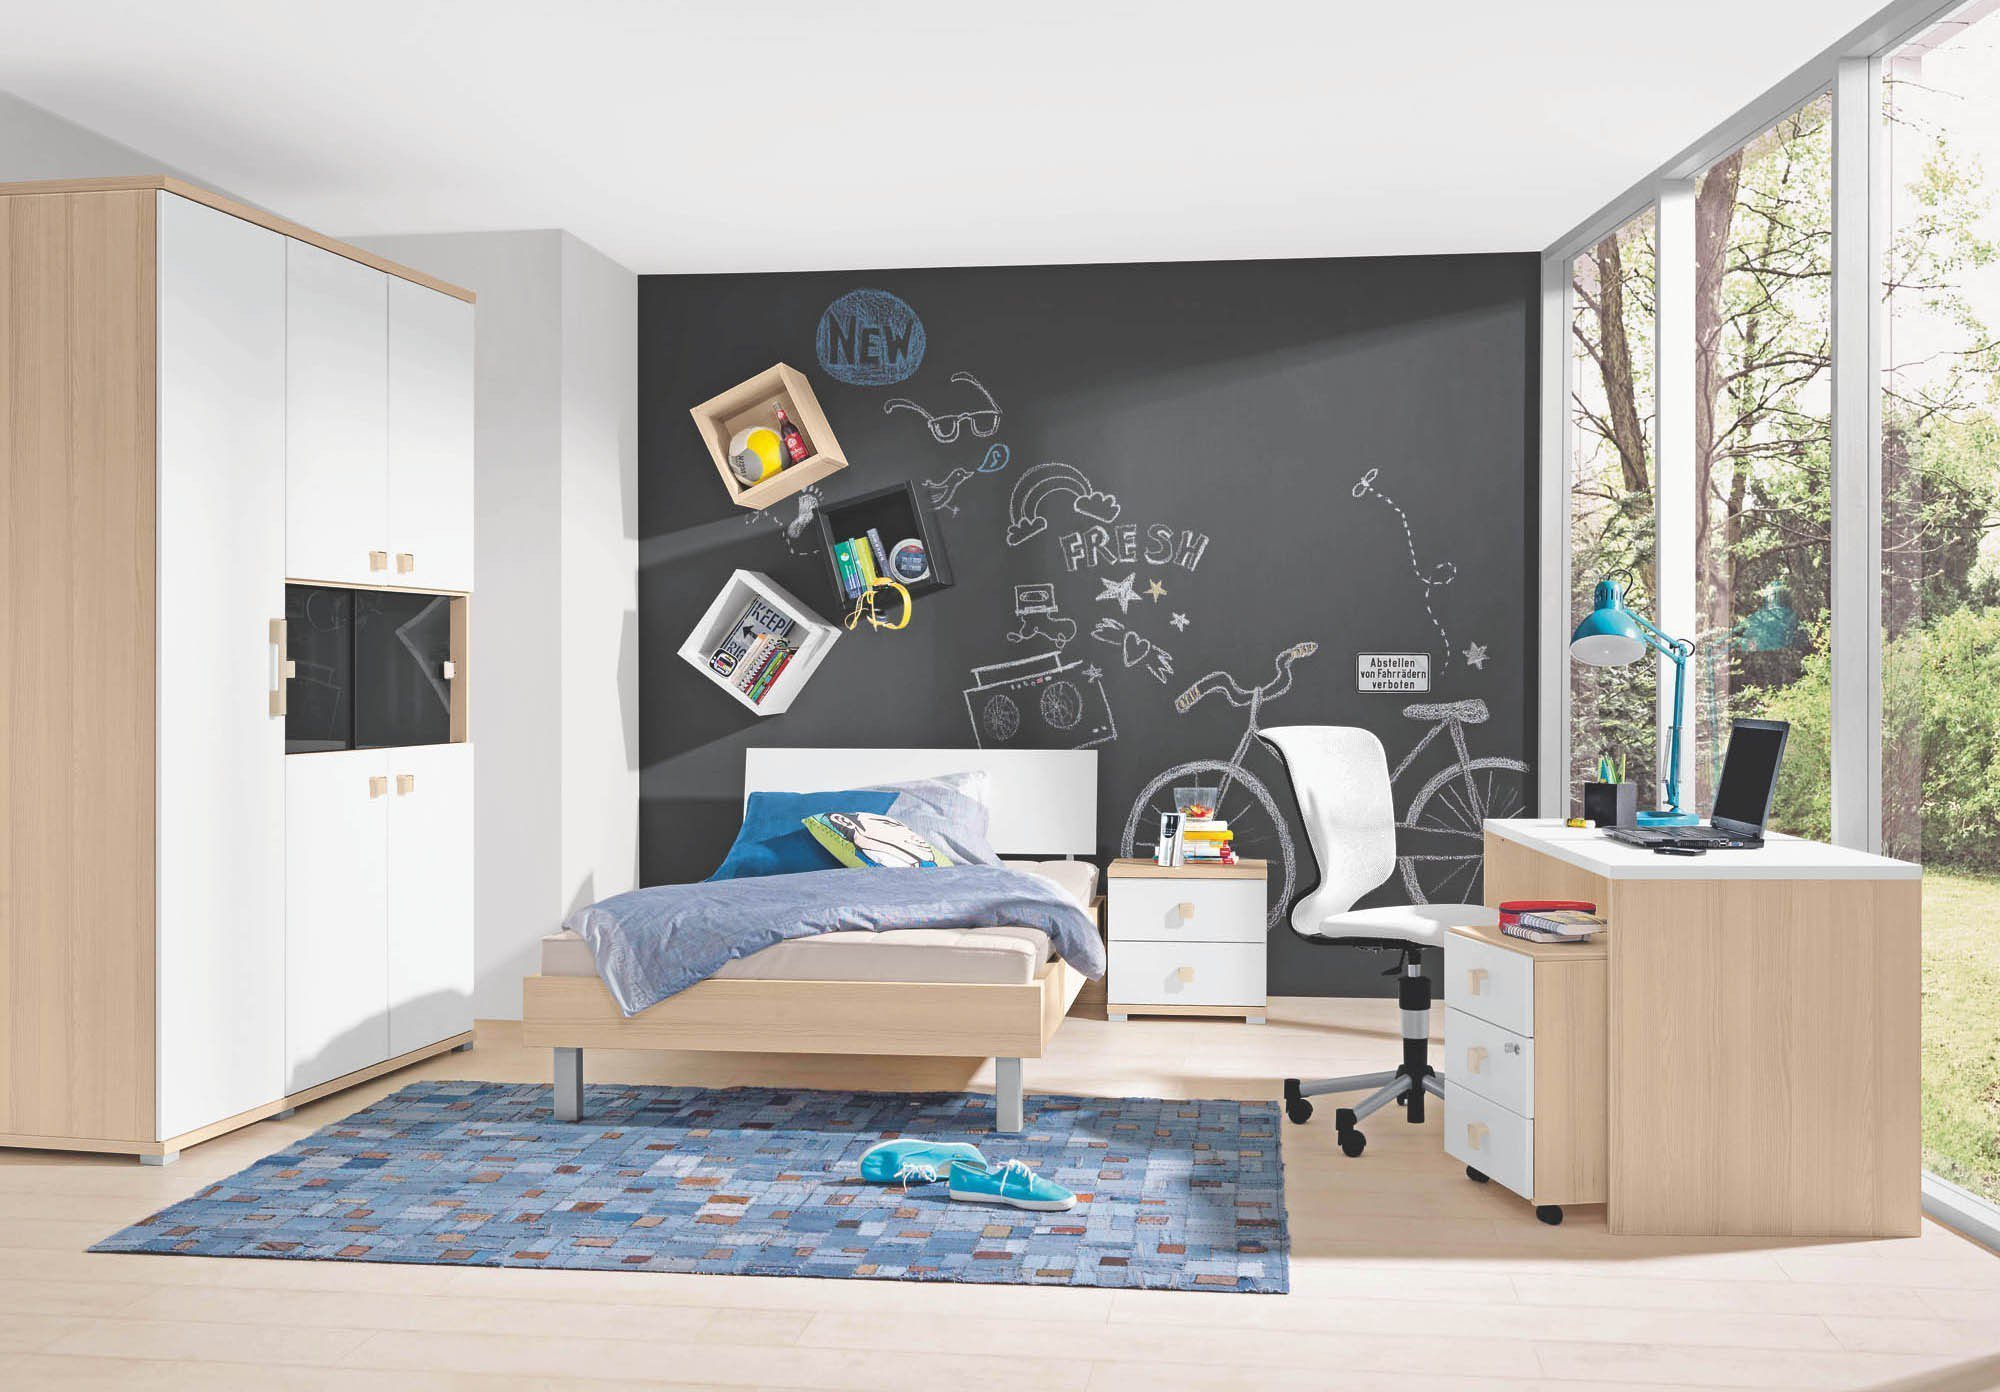 jugendm bel unlimited von welle schrank liege m bel. Black Bedroom Furniture Sets. Home Design Ideas